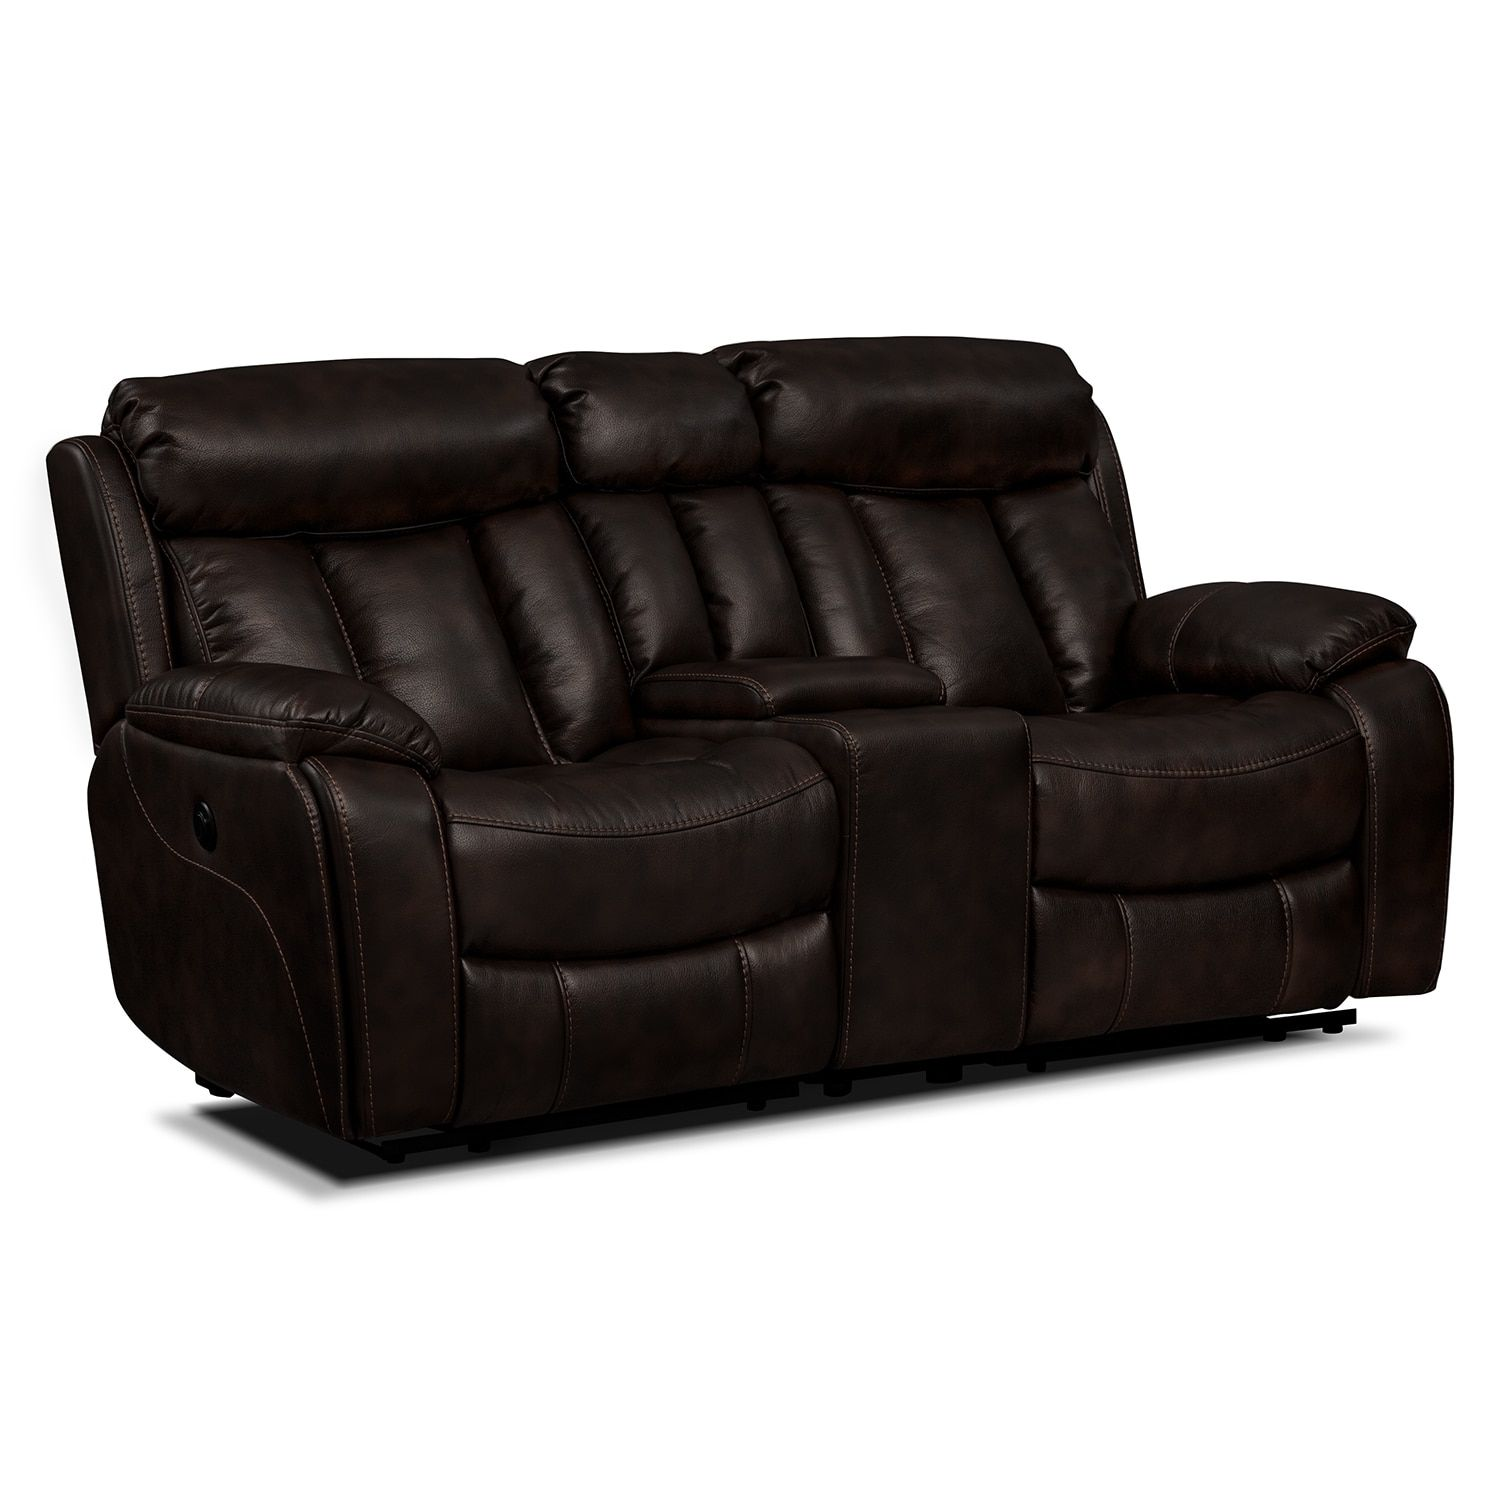 Diablo Power Reclining Loveseat Walnut Power Reclining